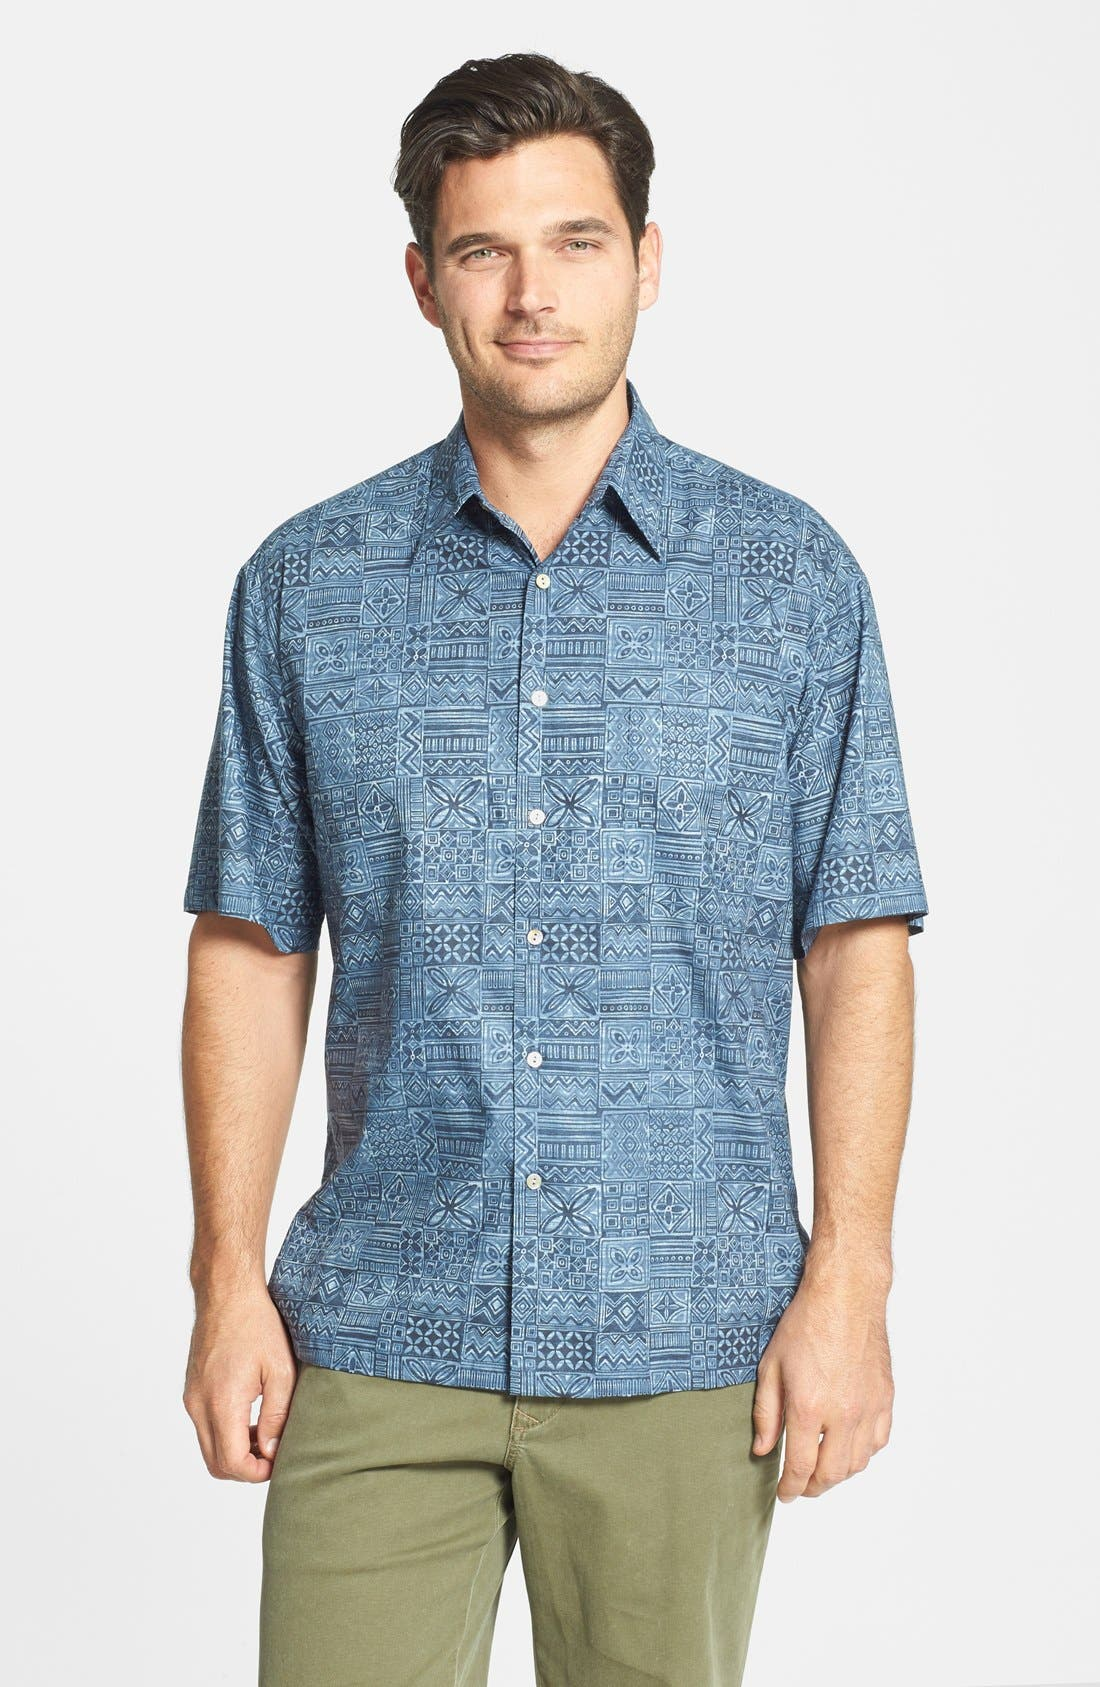 Main Image - Tori Richard 'Tapa Maze' Cotton Lawn Campshirt